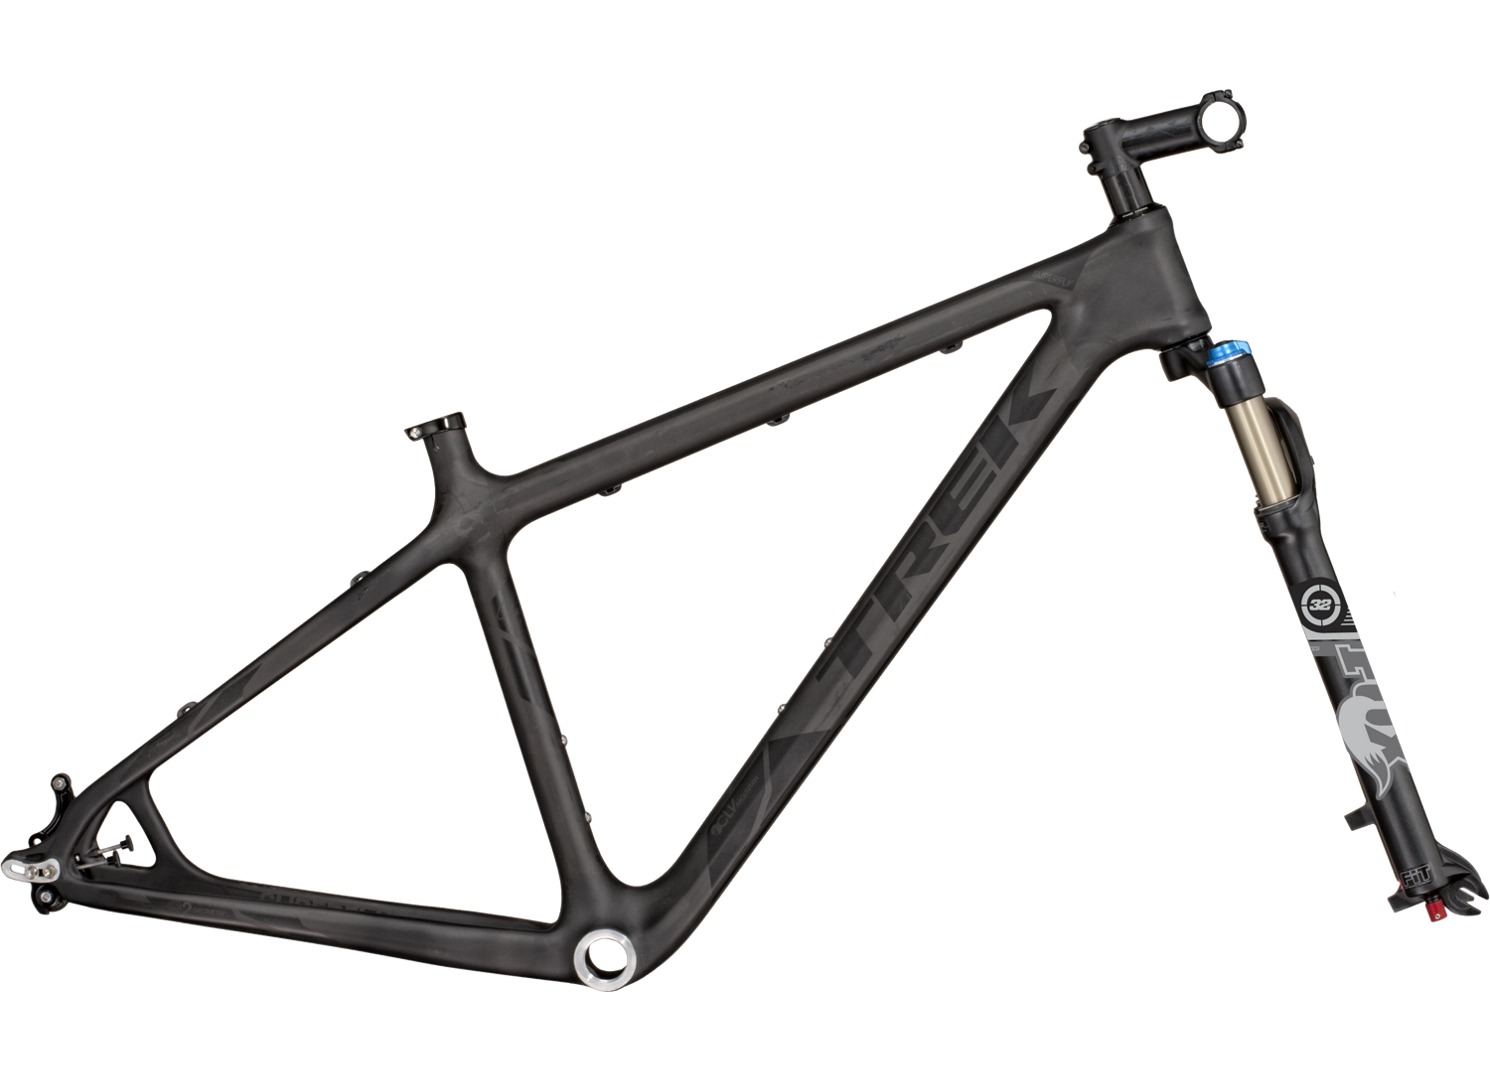 d4ba3883e81 2012 Superfly SS Frameset - Bike Archive - Trek Bicycle